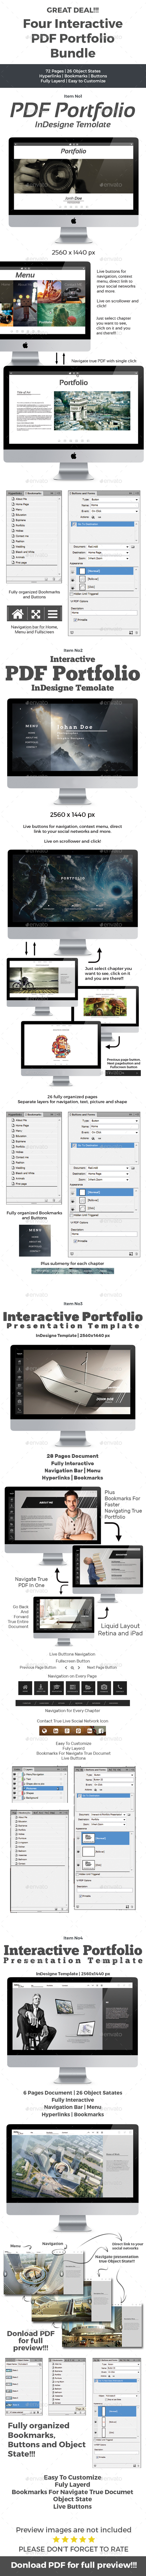 Interactive PDF Prezentation Bundle - Digital Magazines ePublishing